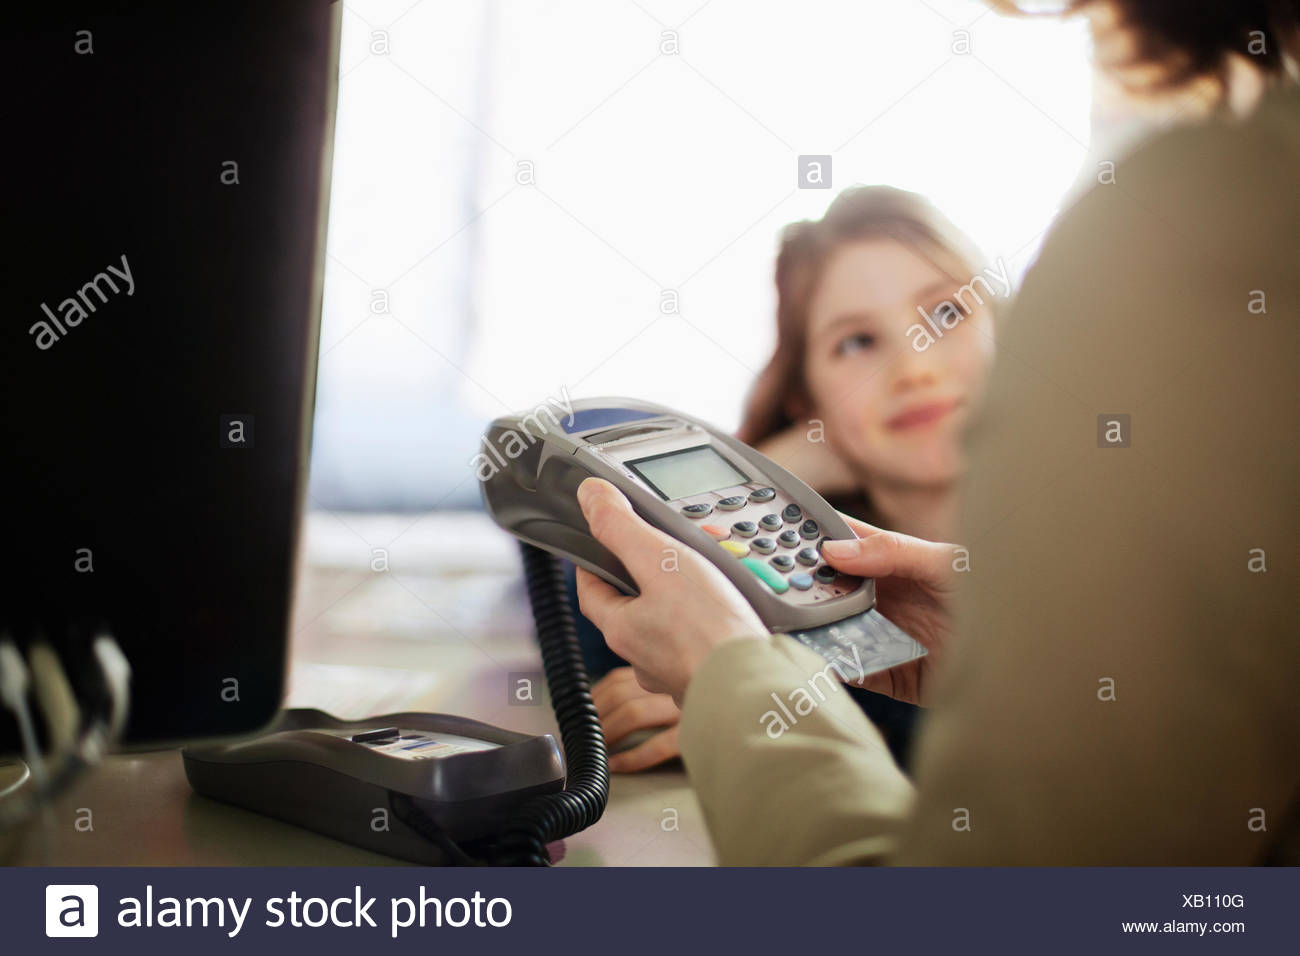 mom and daughter paying for purchase - Stock Image